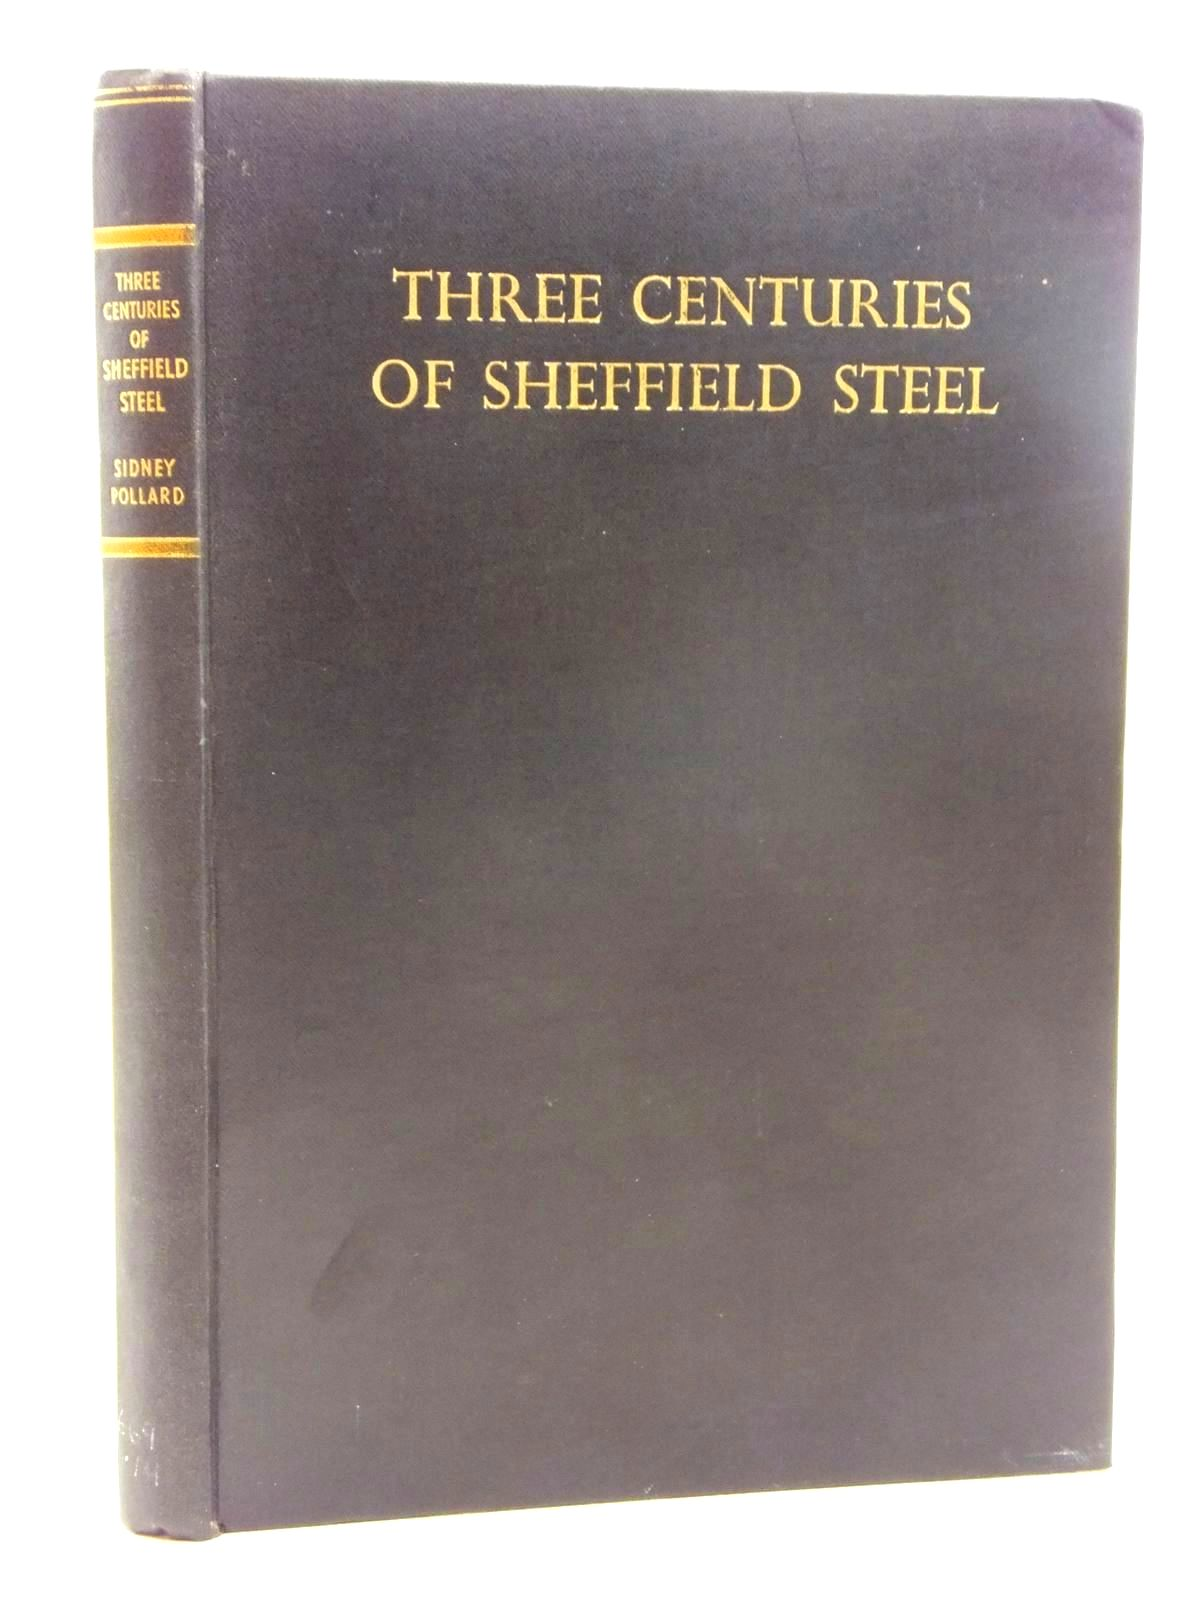 Photo of THREE CENTURIES OF SHEFFIELD STEEL written by Pollard, Sidney published by Marsh Brothers & Co. Limited (STOCK CODE: 1609727)  for sale by Stella & Rose's Books